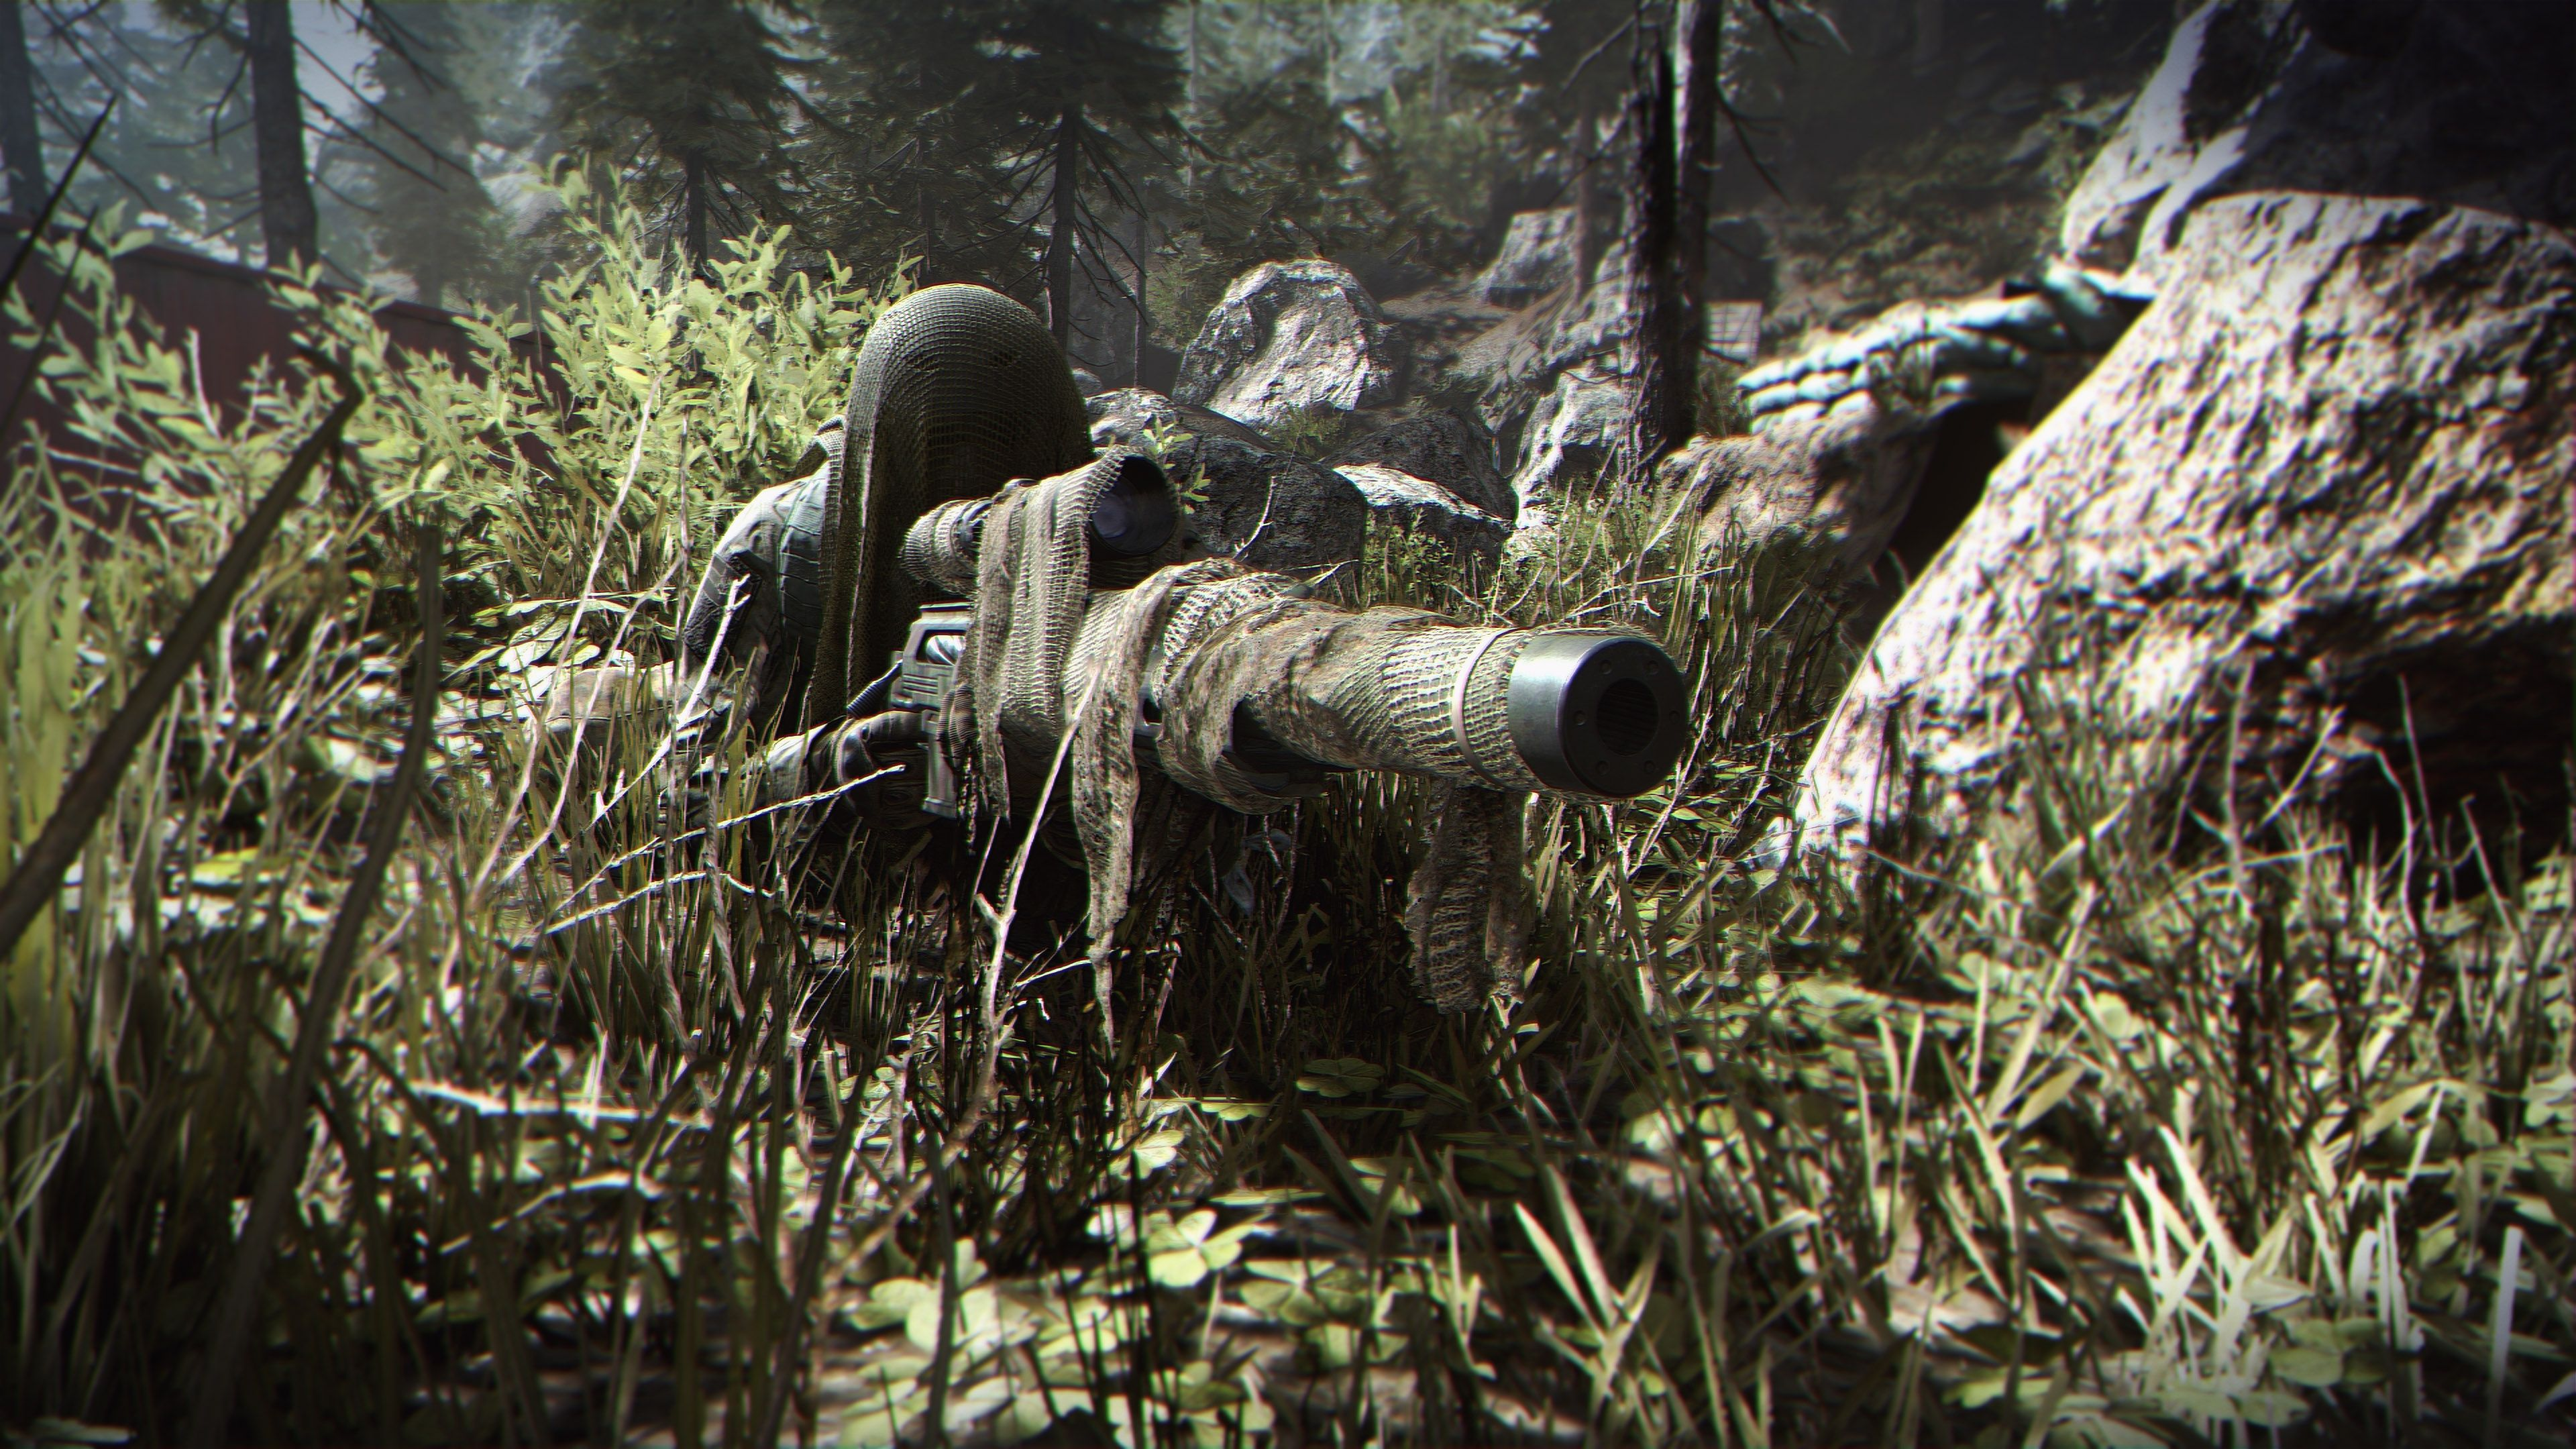 Call Of Duty Modern Warfare Sniper Camouflage Soldier 4k 11 Wallpaper